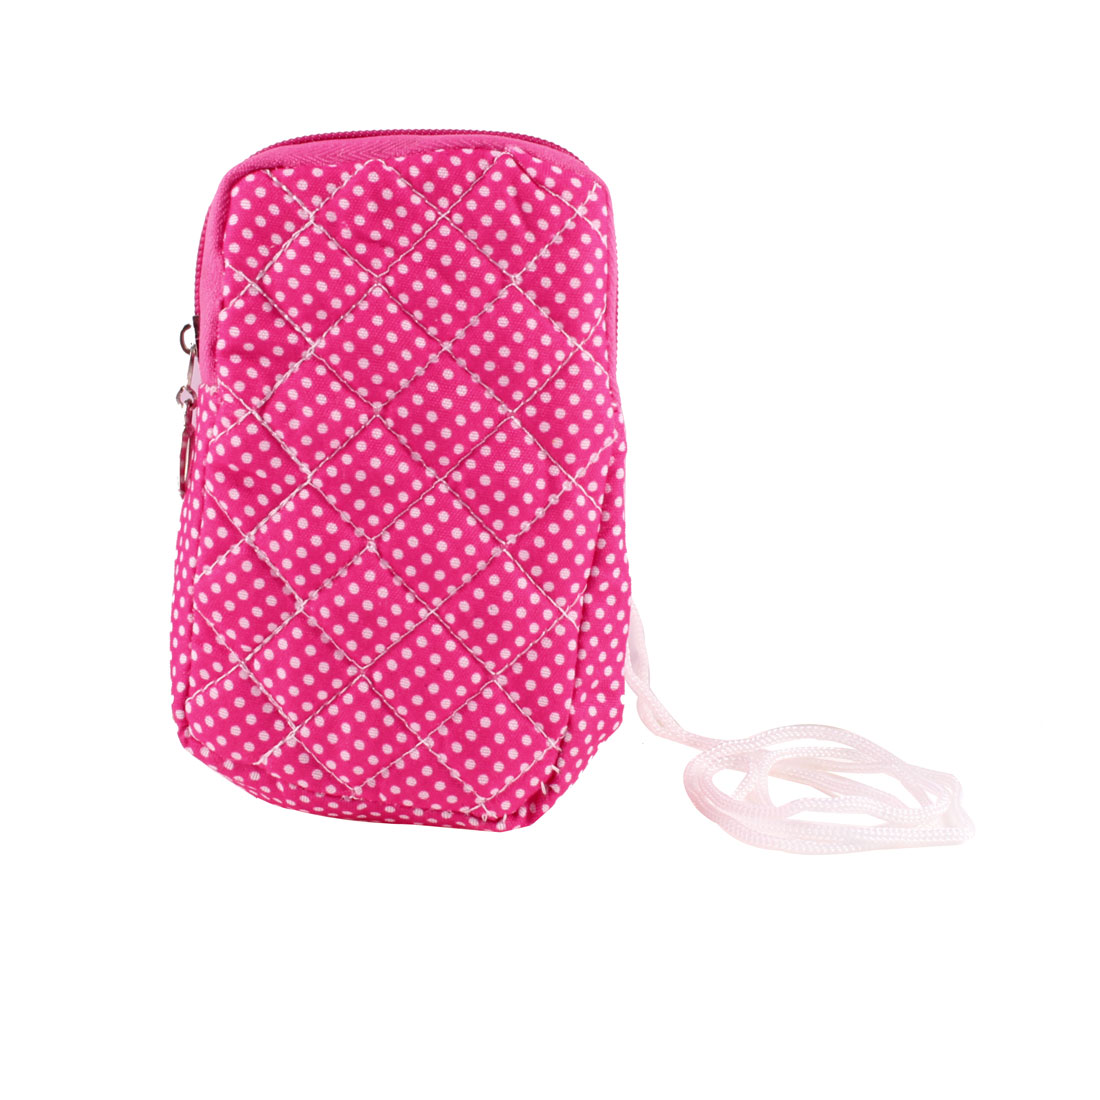 White Fuchsia Polka Dots Print Heart Dangle Zipper Closure Phone Wrist Bag Pouch